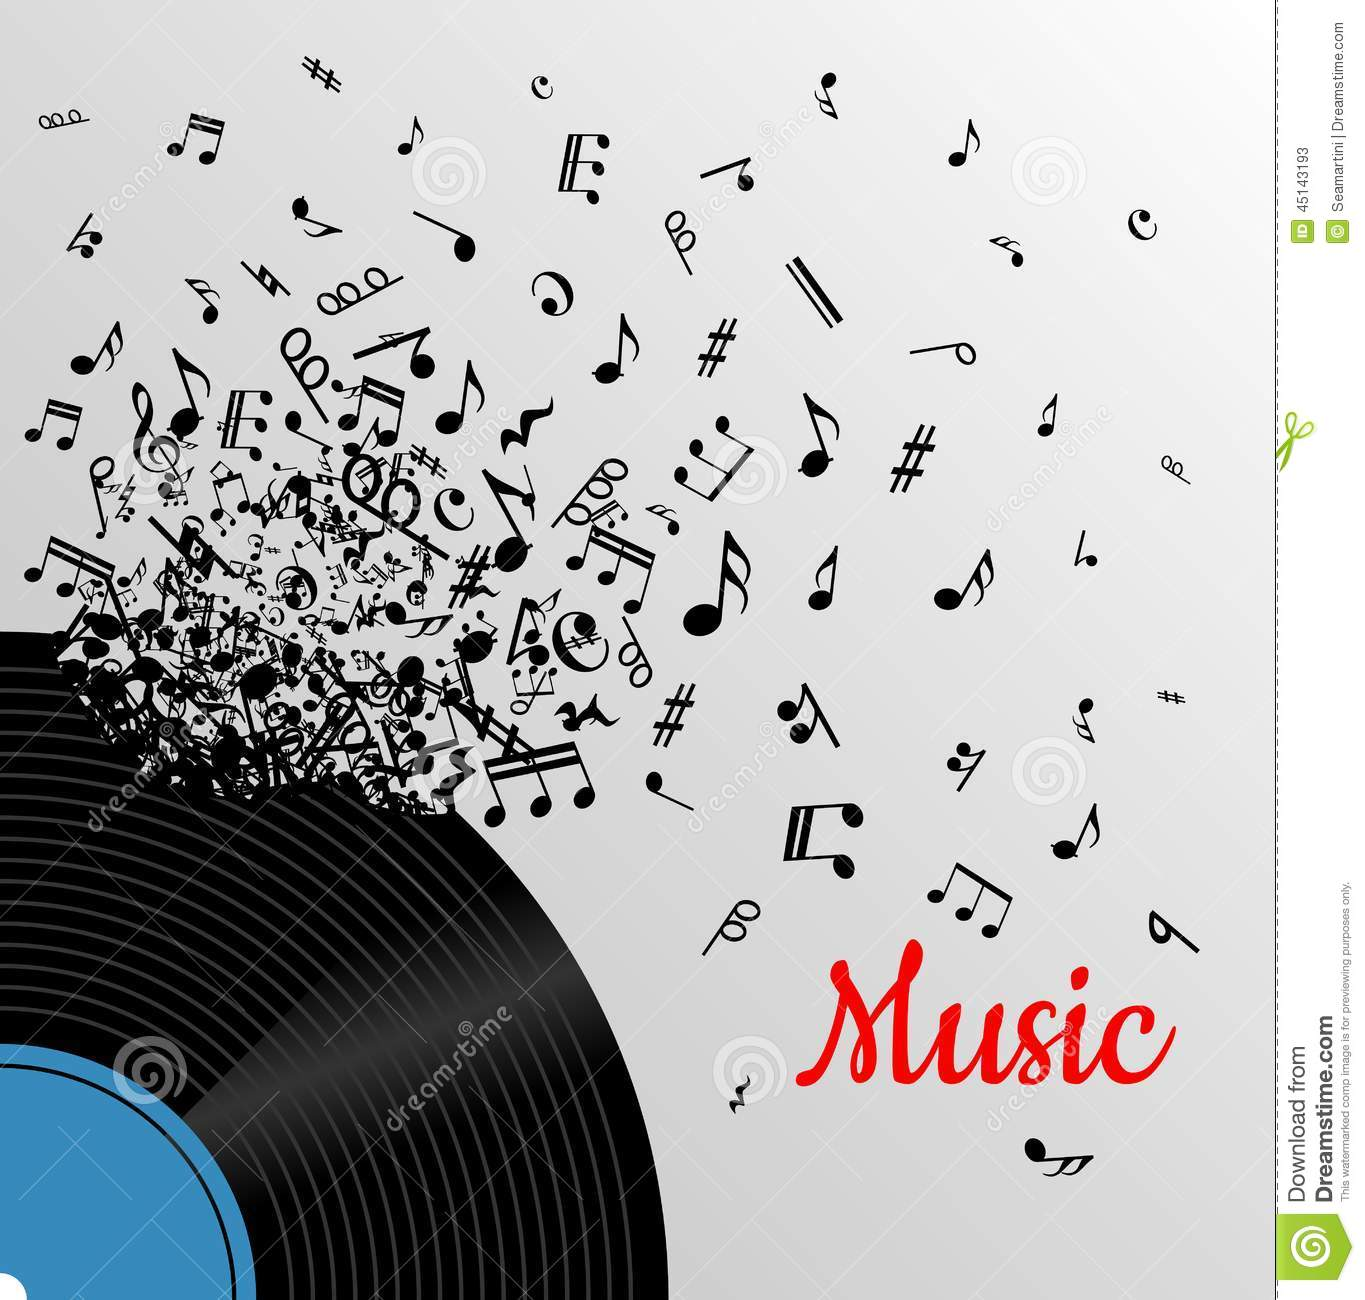 Retro Music Vintage Poster Stock Vector Image 45143193